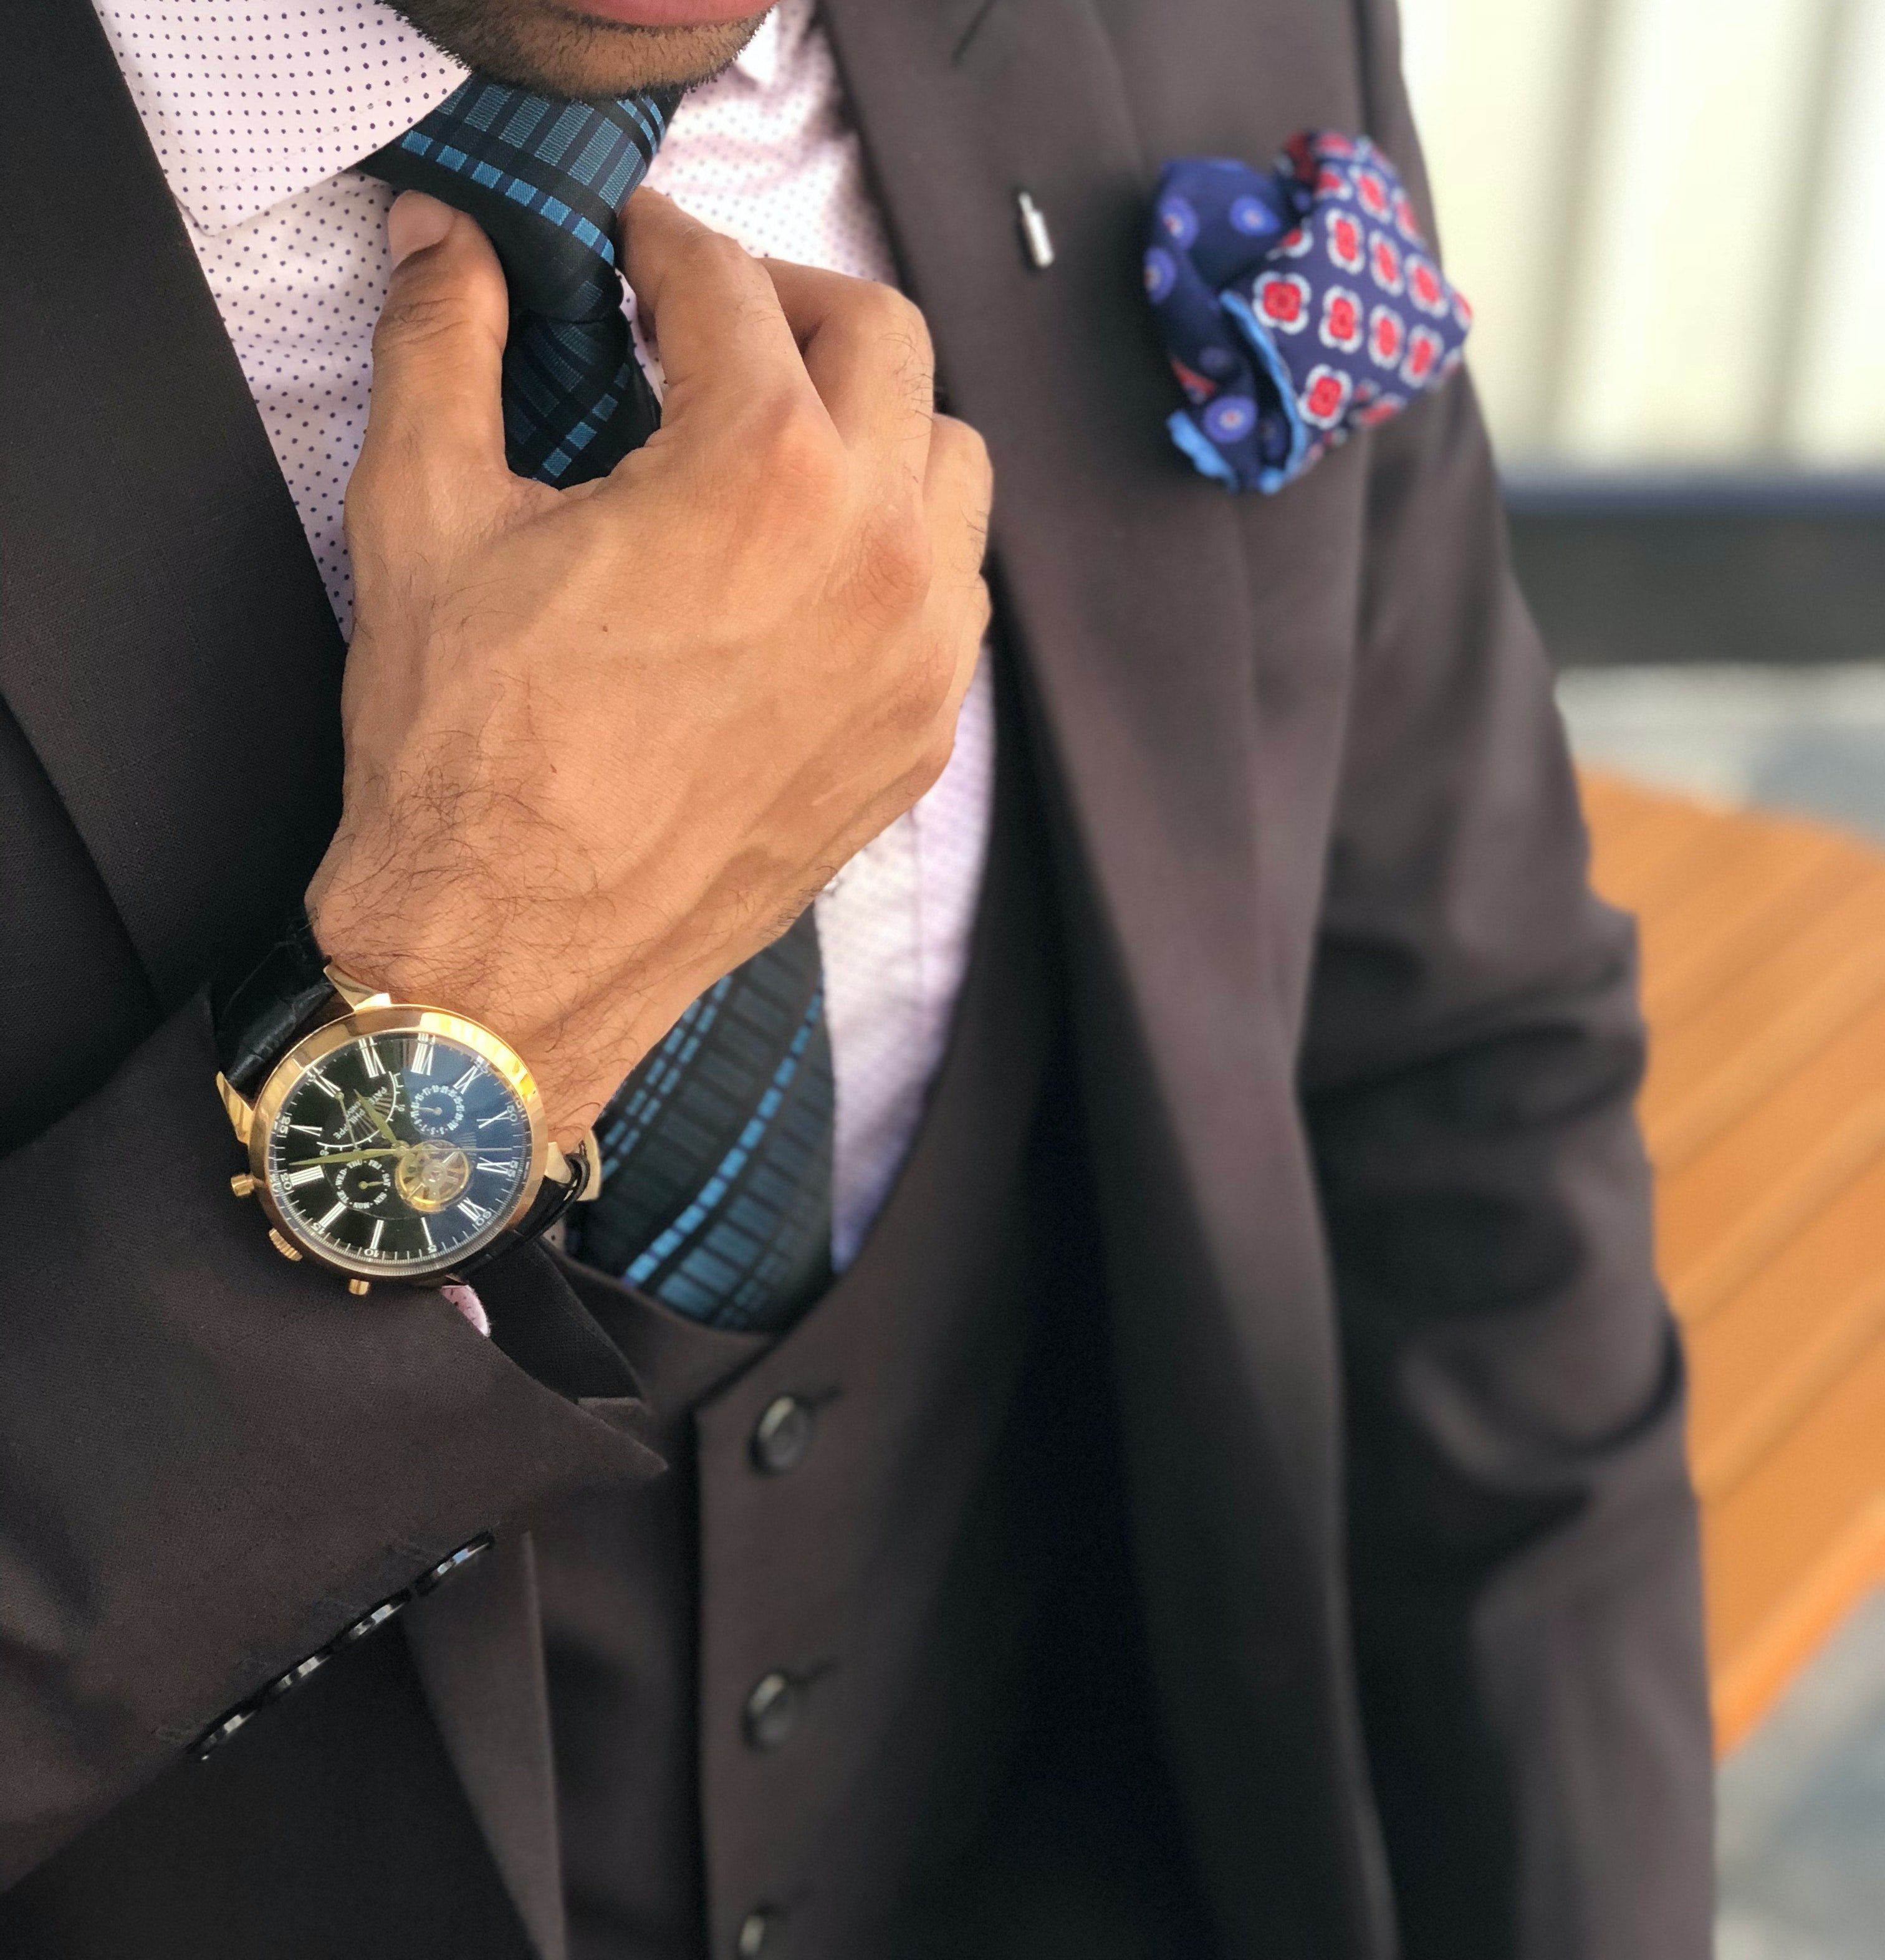 Pictured - A man in a formal suit holding his necktie   Source: Pexels